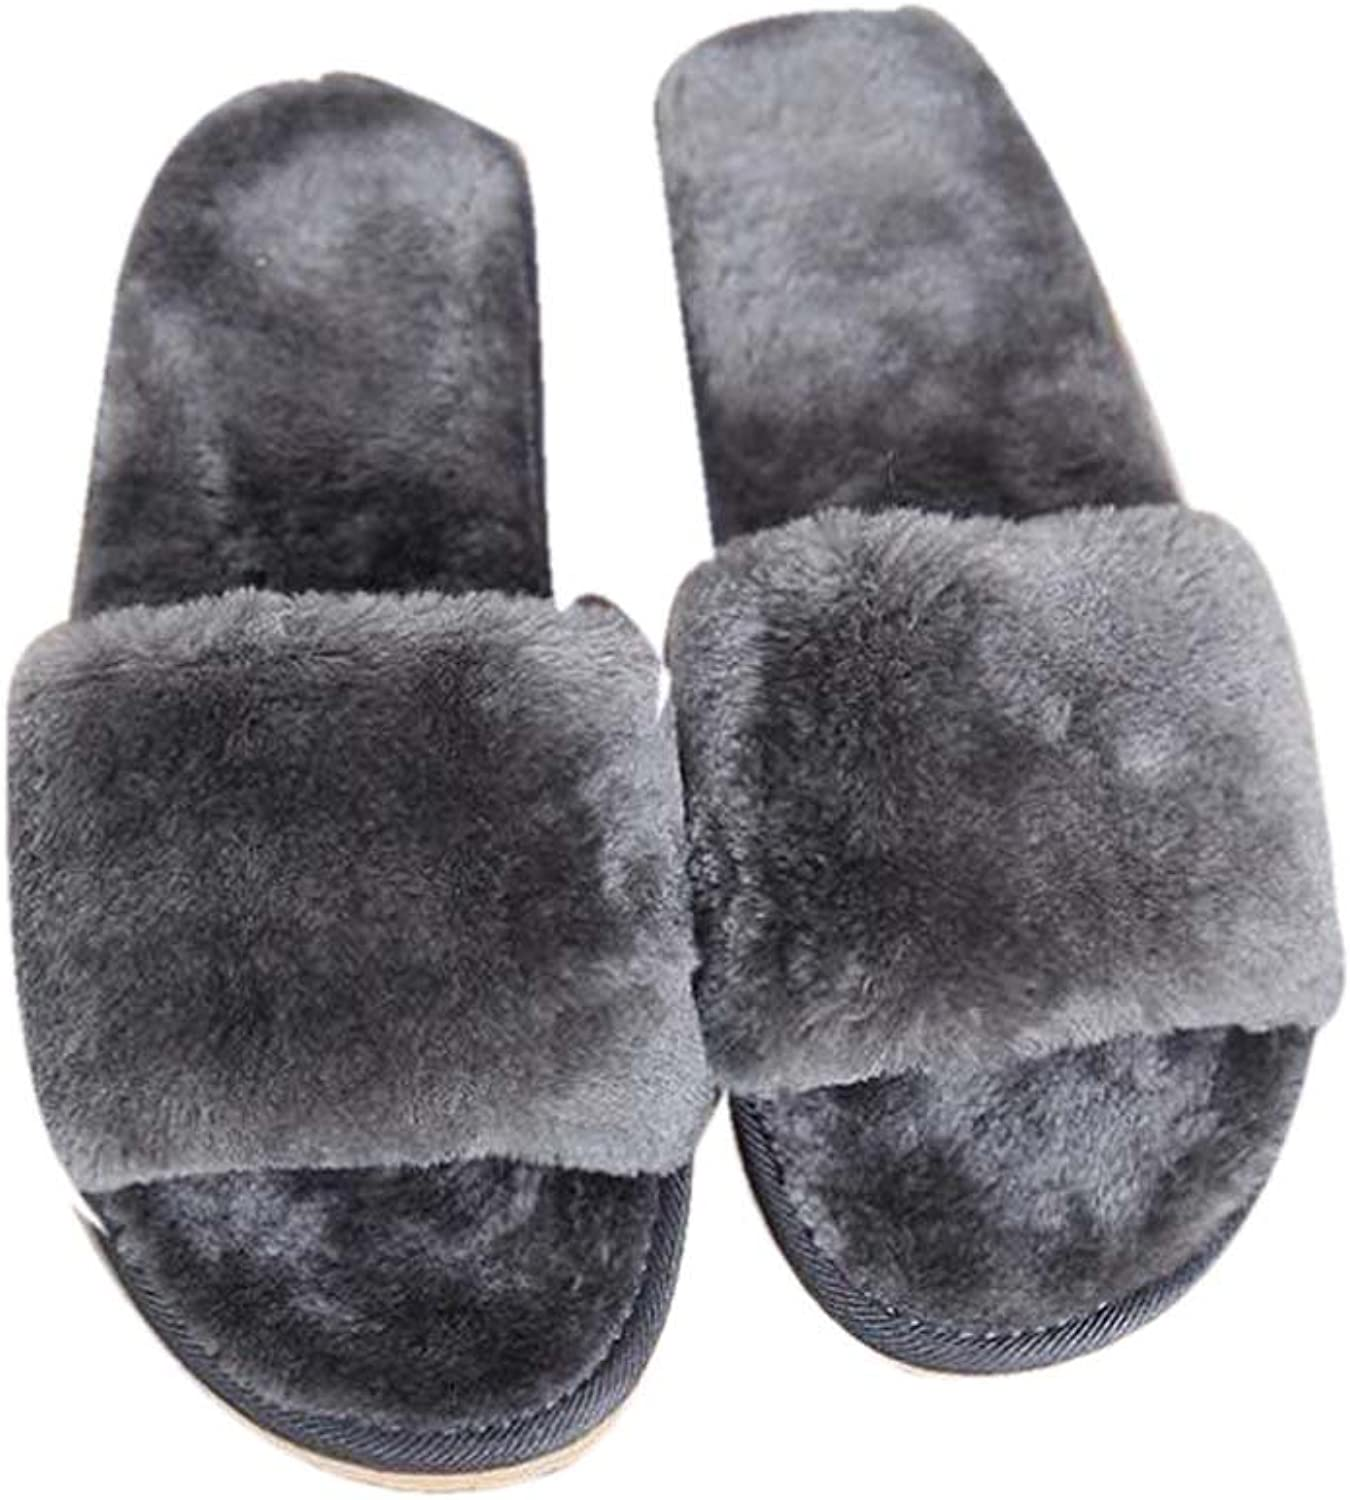 Naughtyangel Couples Families Anti-Slip Open Toe Sandal Cozy Plush House Slippers Indoor or Outdoor shoes